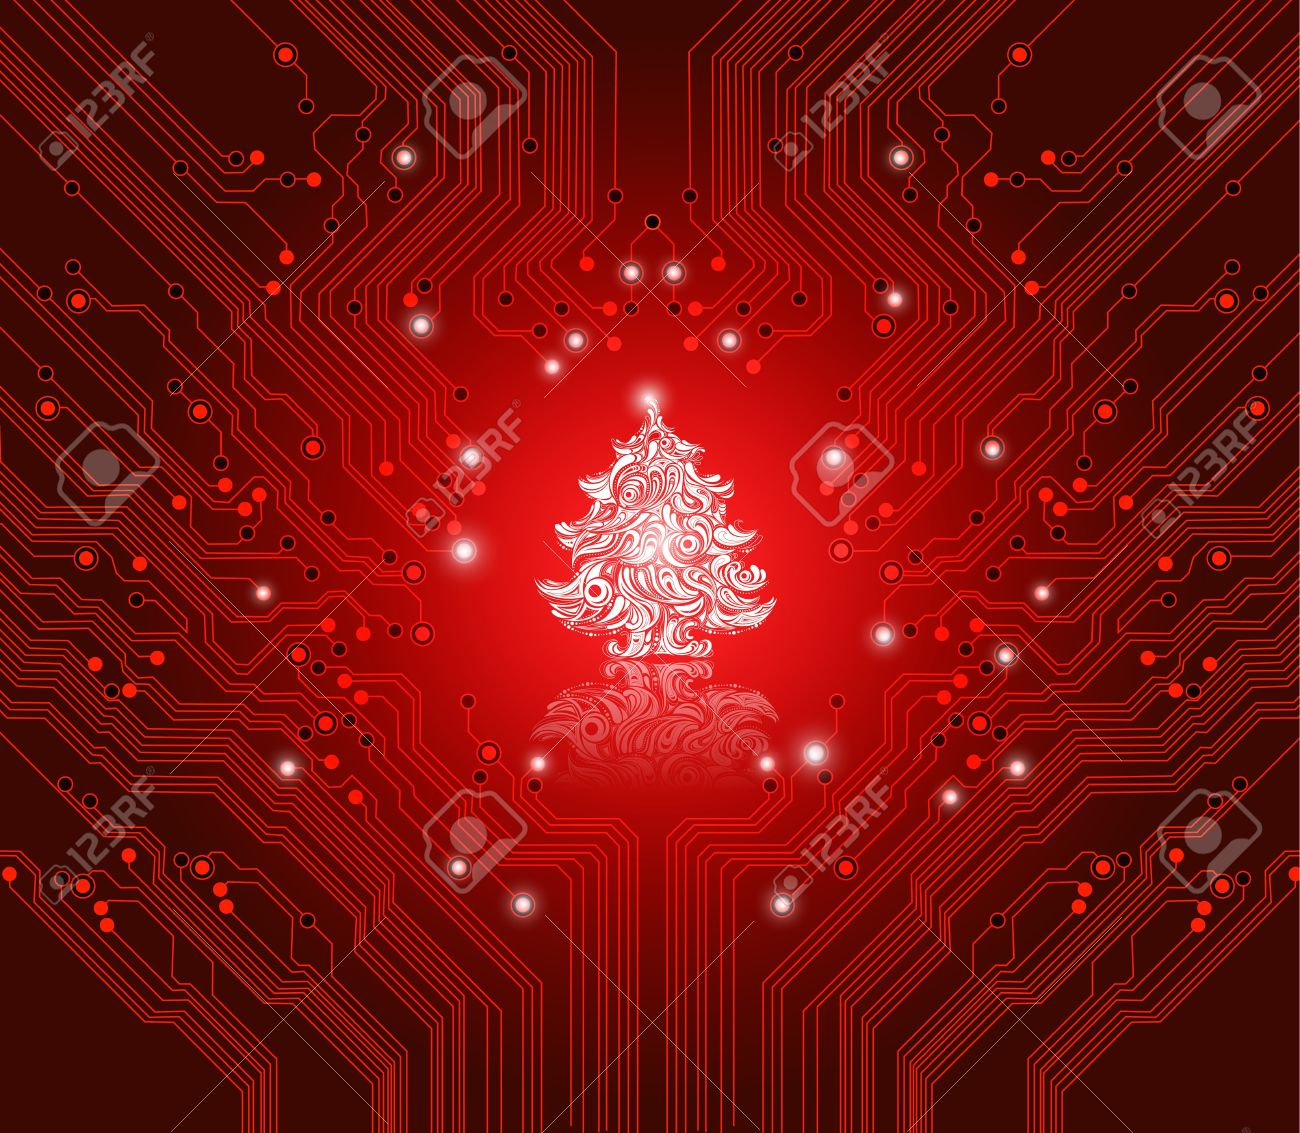 Christmas Red Background With Circuit Board Texture - Creative ...